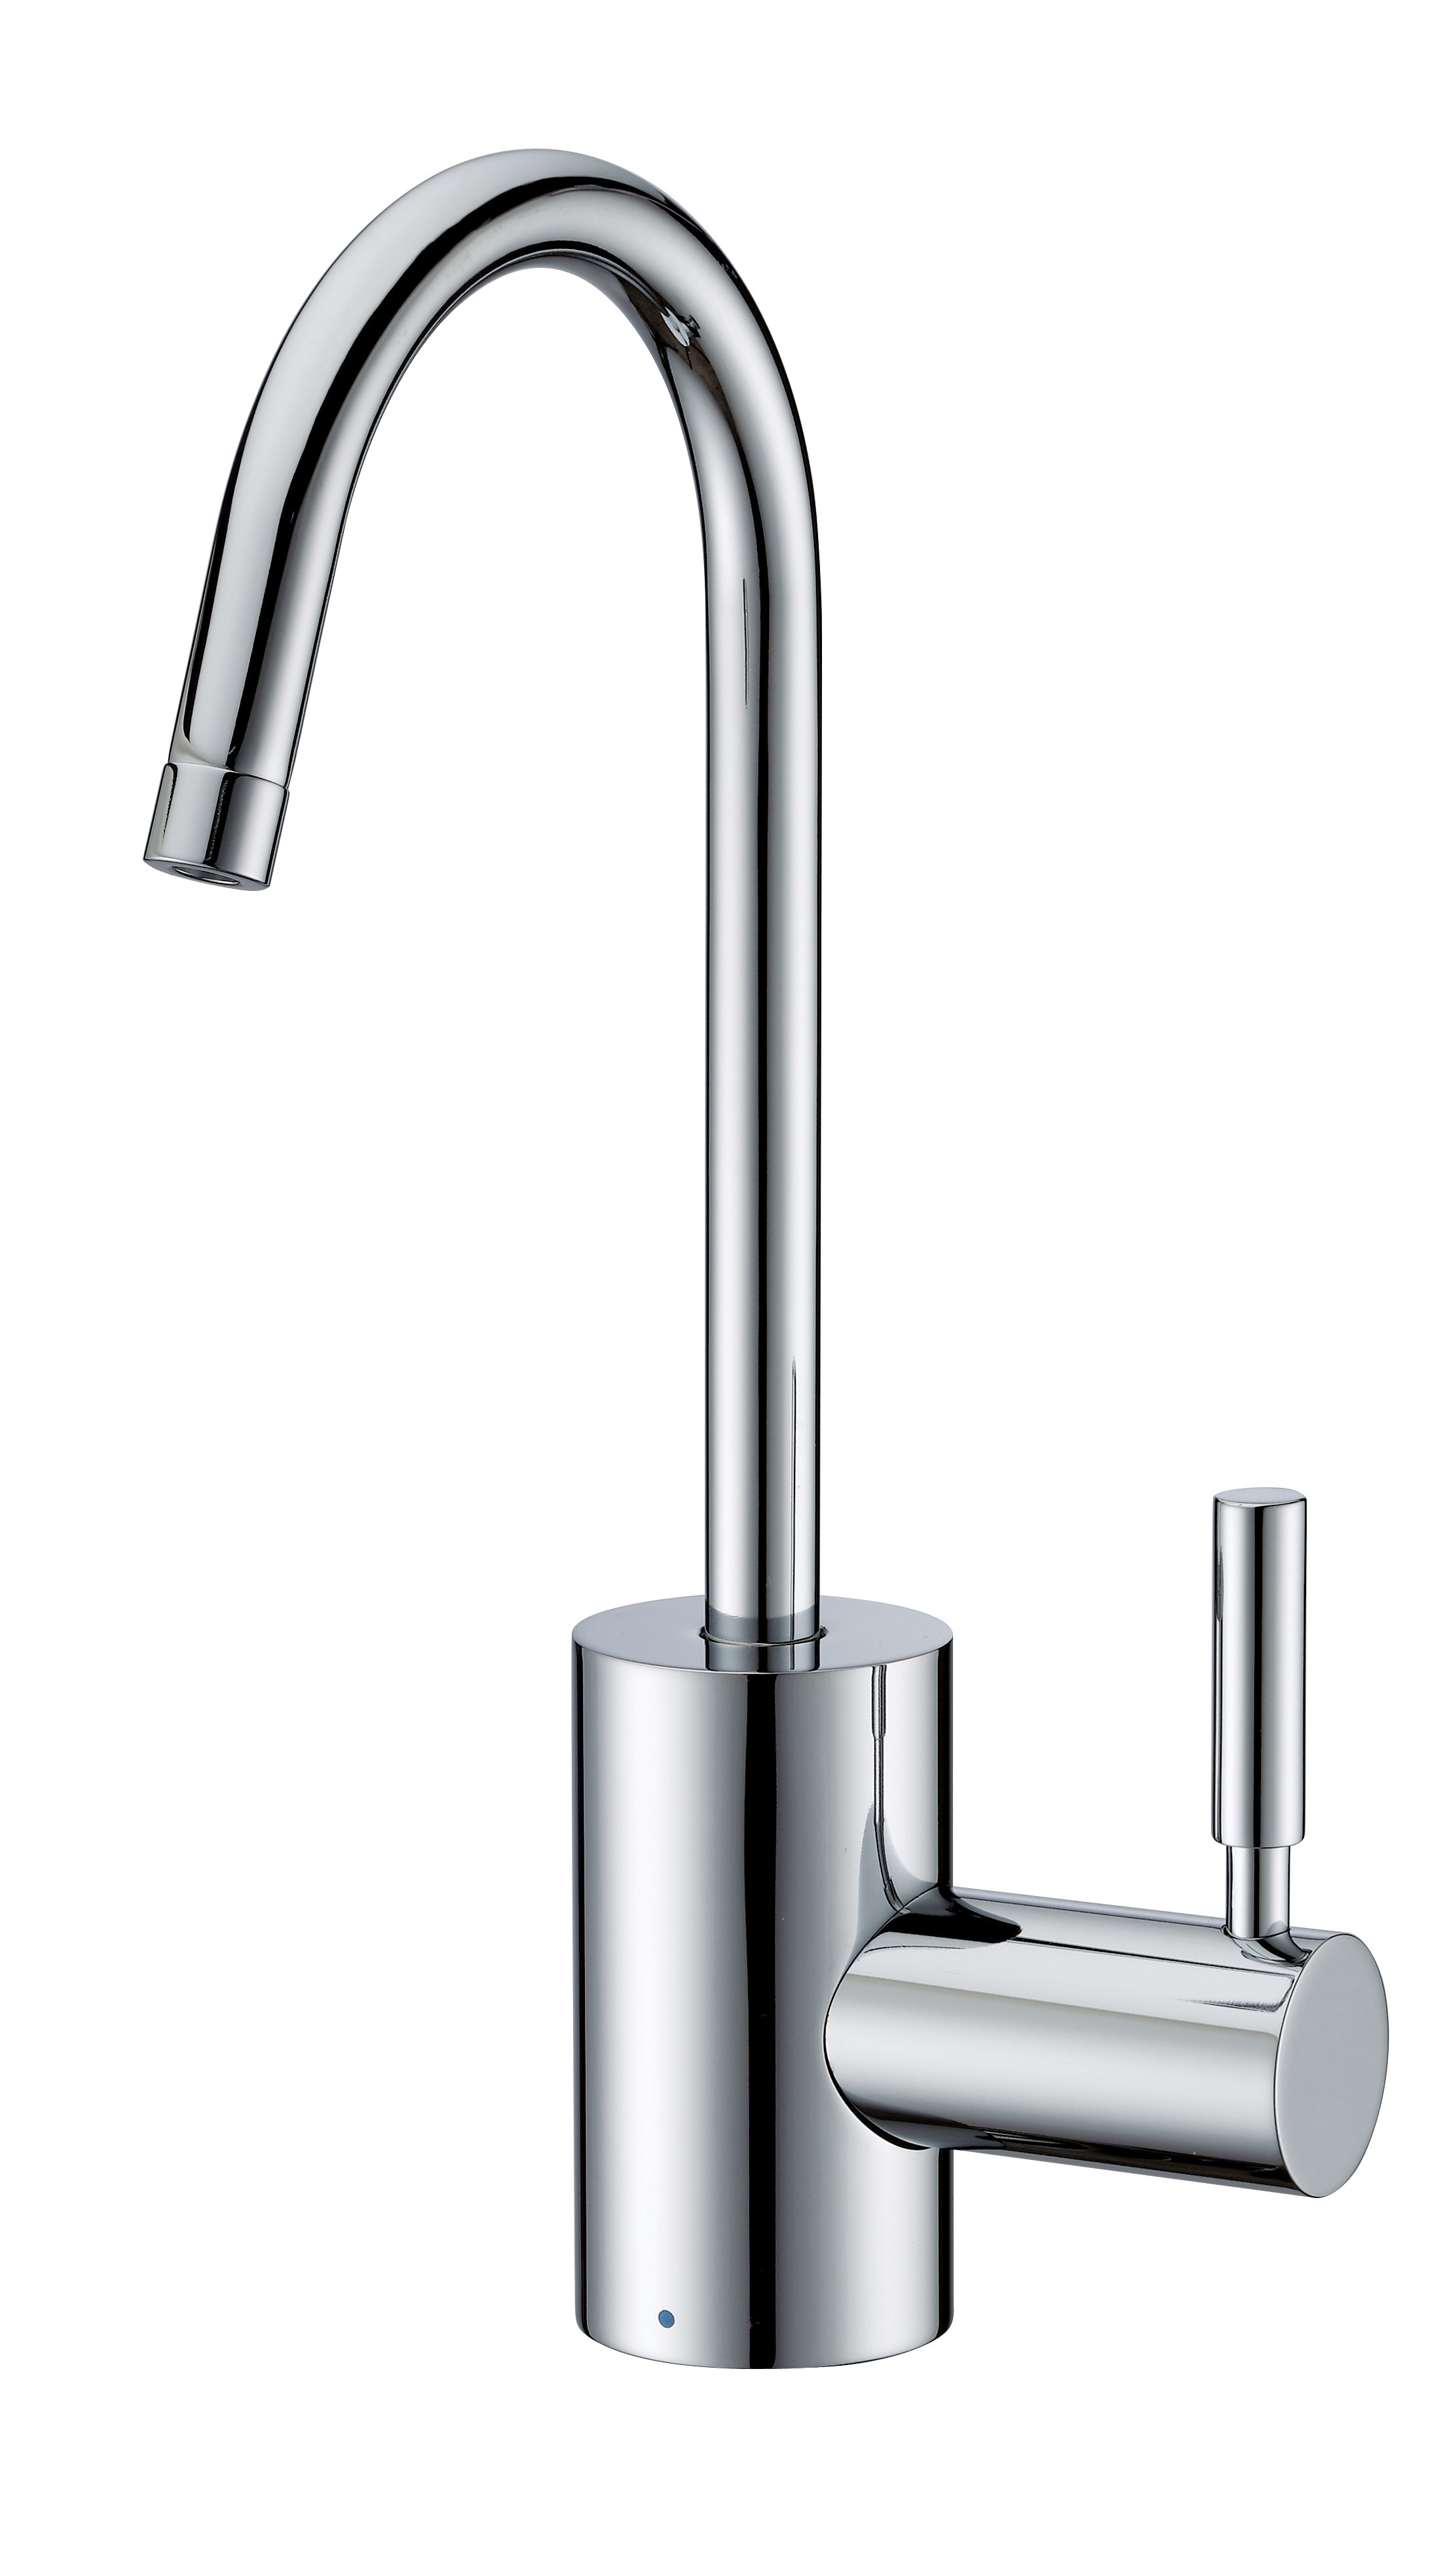 Whitehaus WHFH-C1010-C Polished Chrome Point of Use Cold Water Faucet with Contemporary Spout